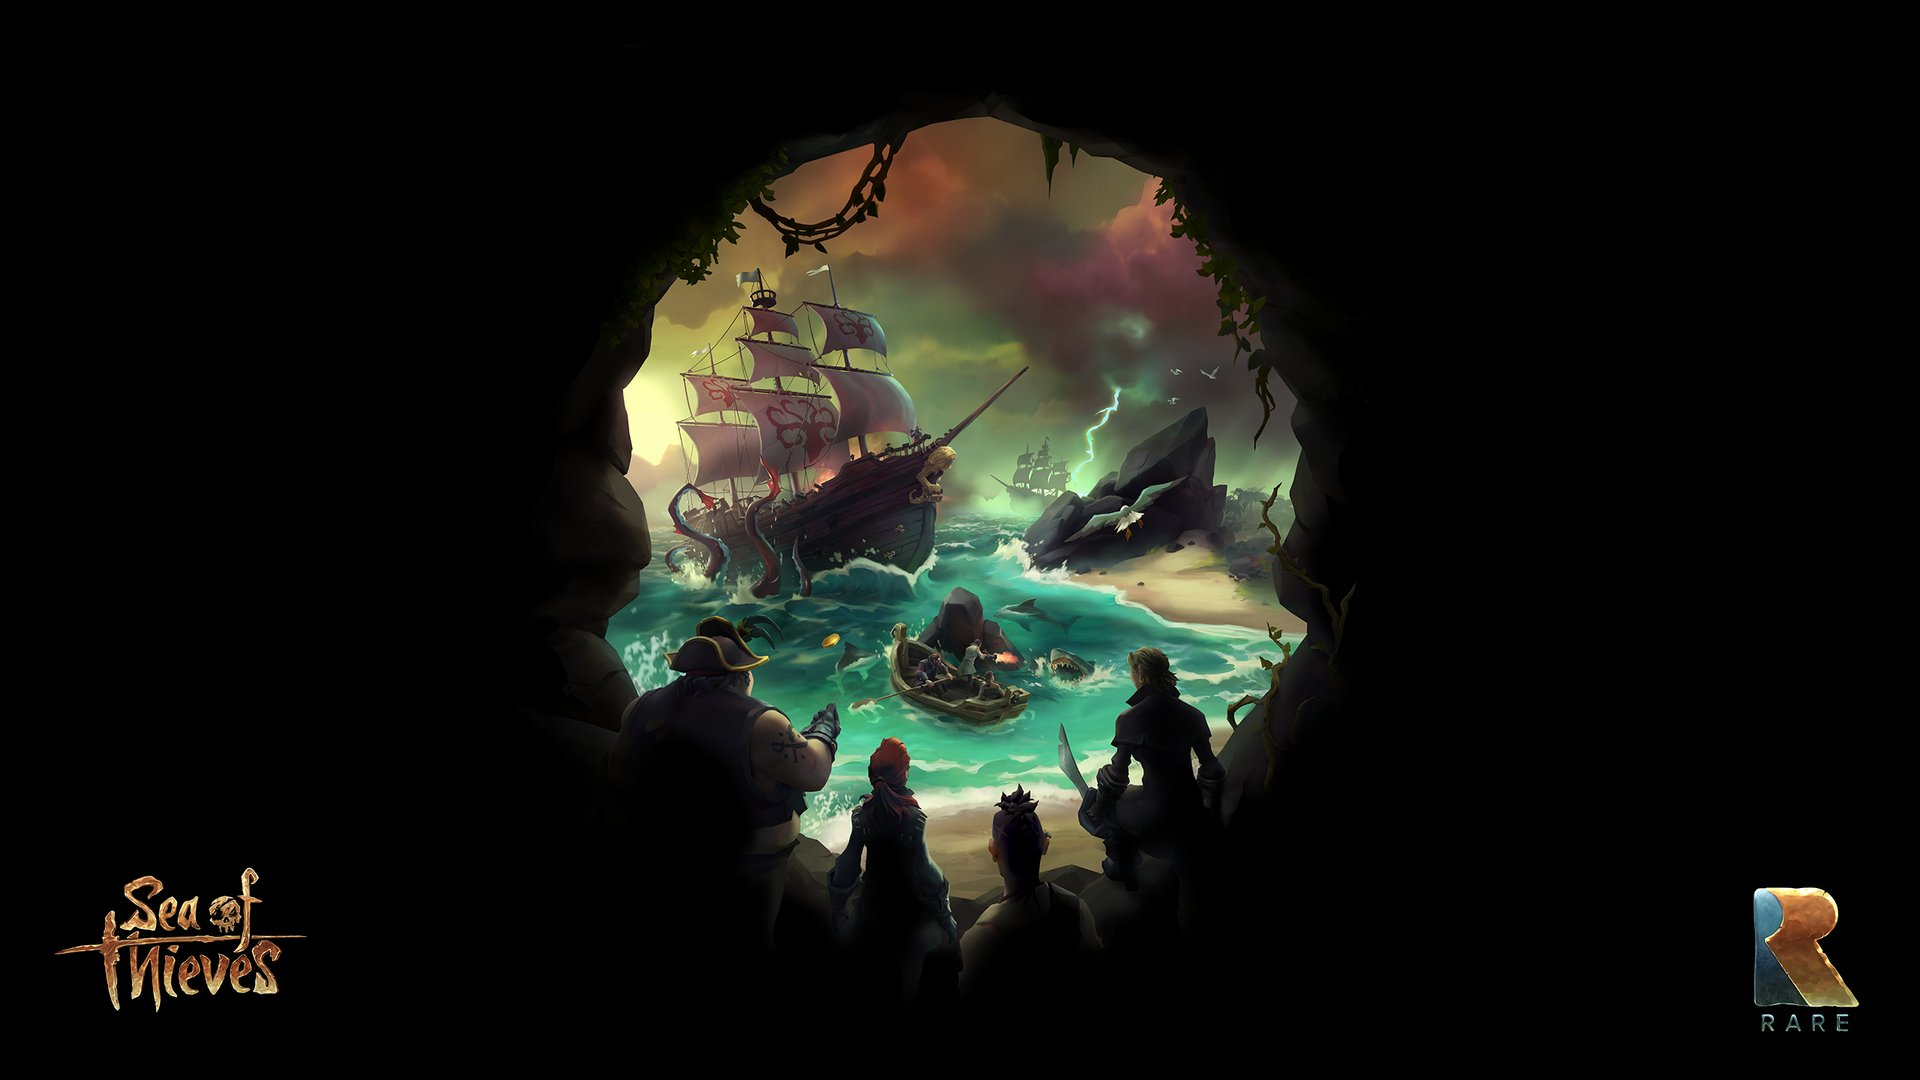 Fondos De Pantalla De Sea Of Thieves, Wallpapers